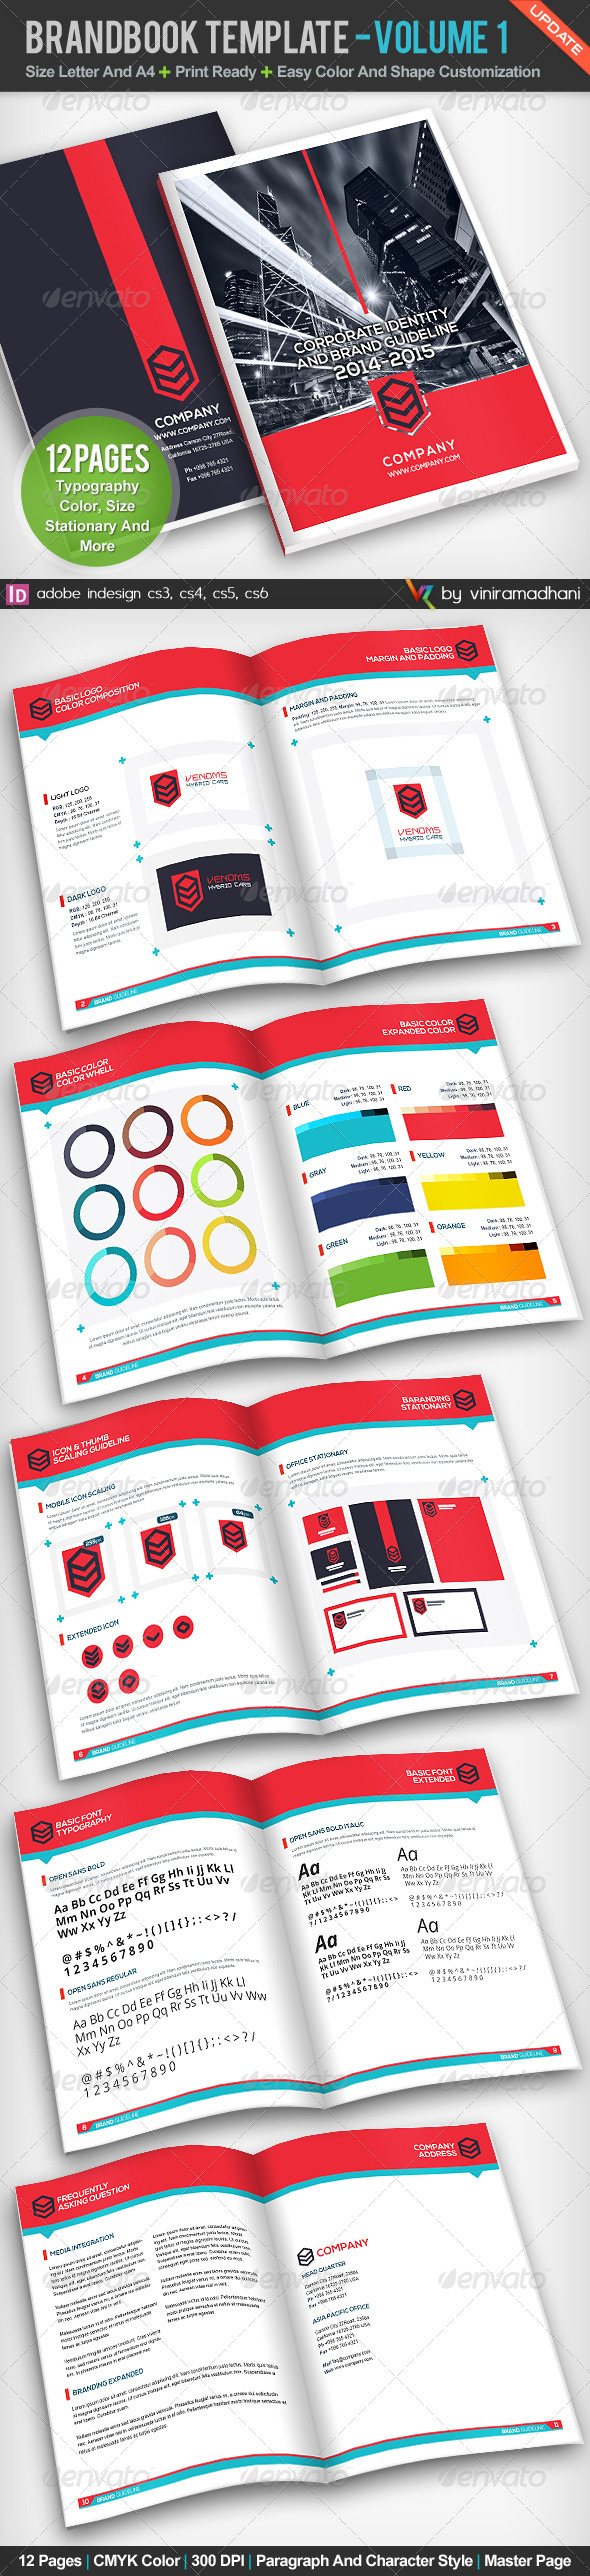 GraphicRiver BrandBook Template Volume 1 5116680